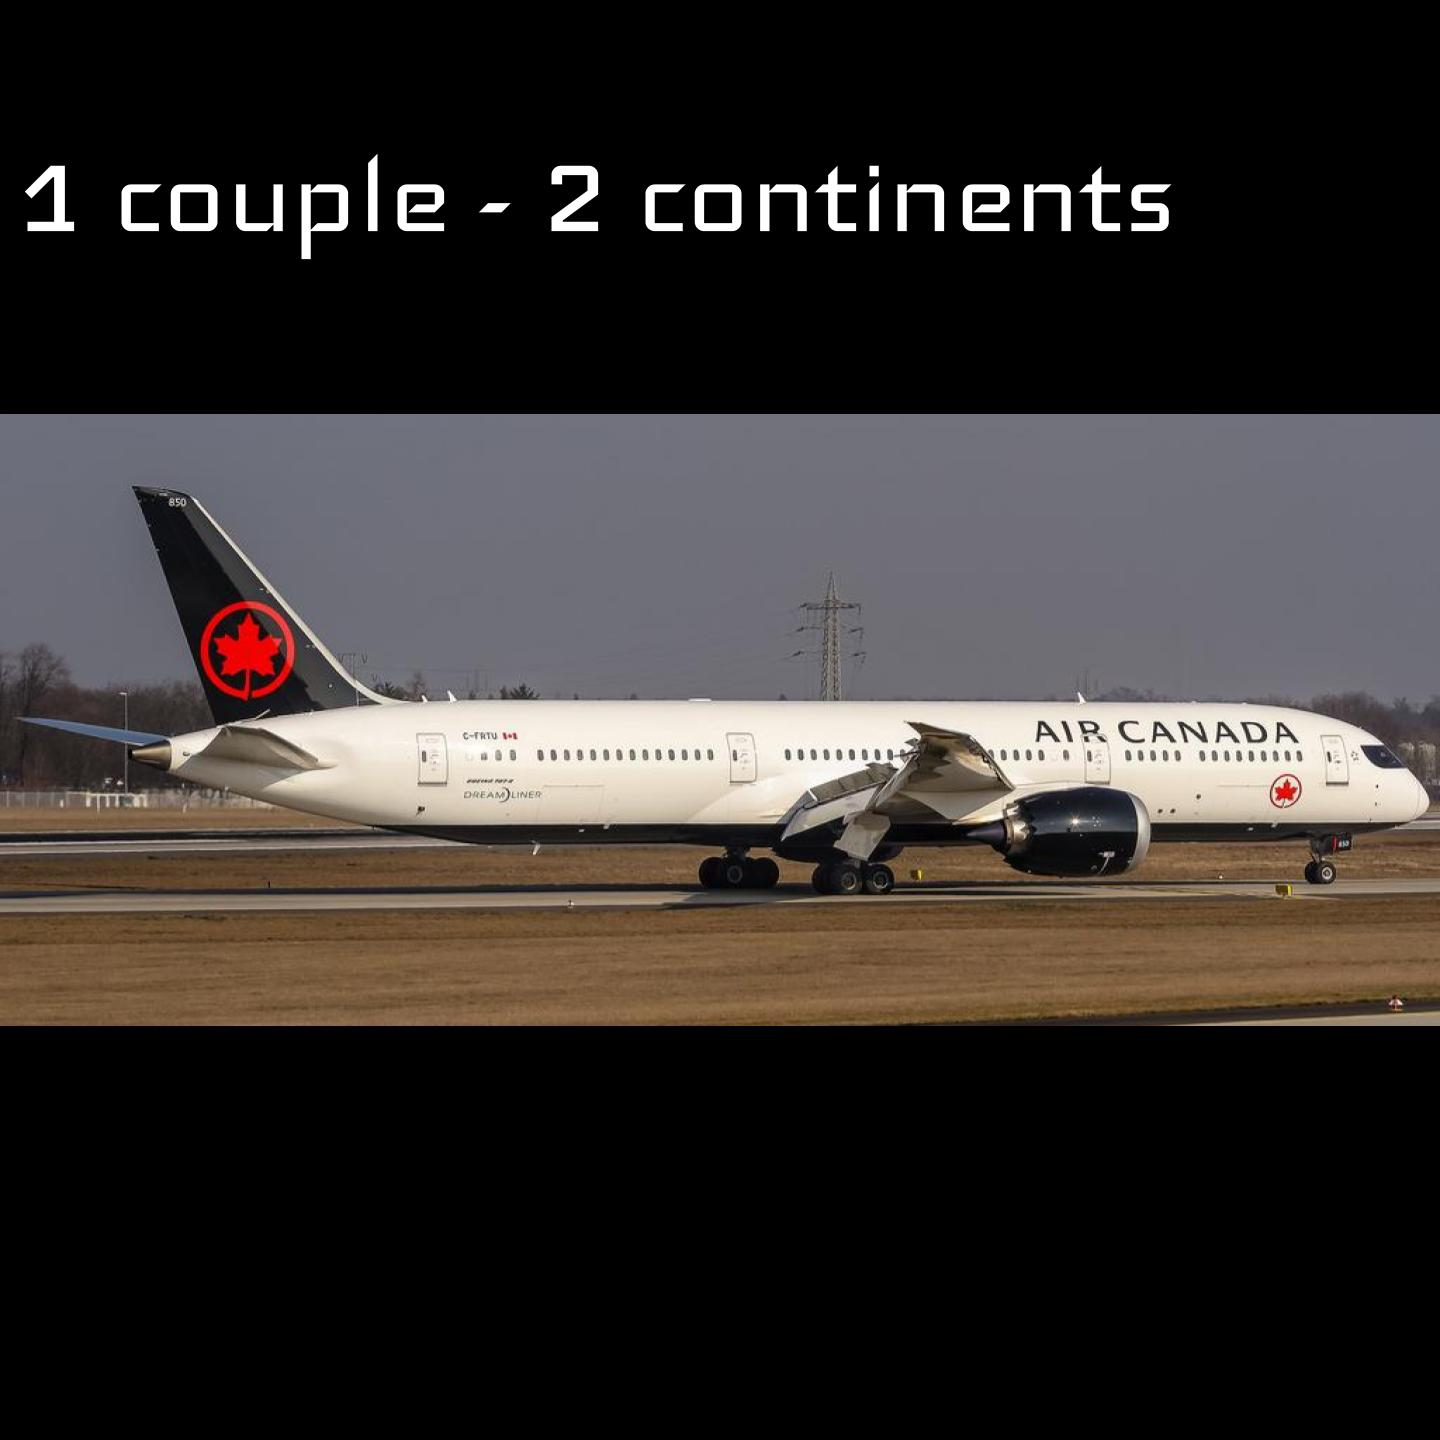 Épisode 83 - 1 couple - 2 continents